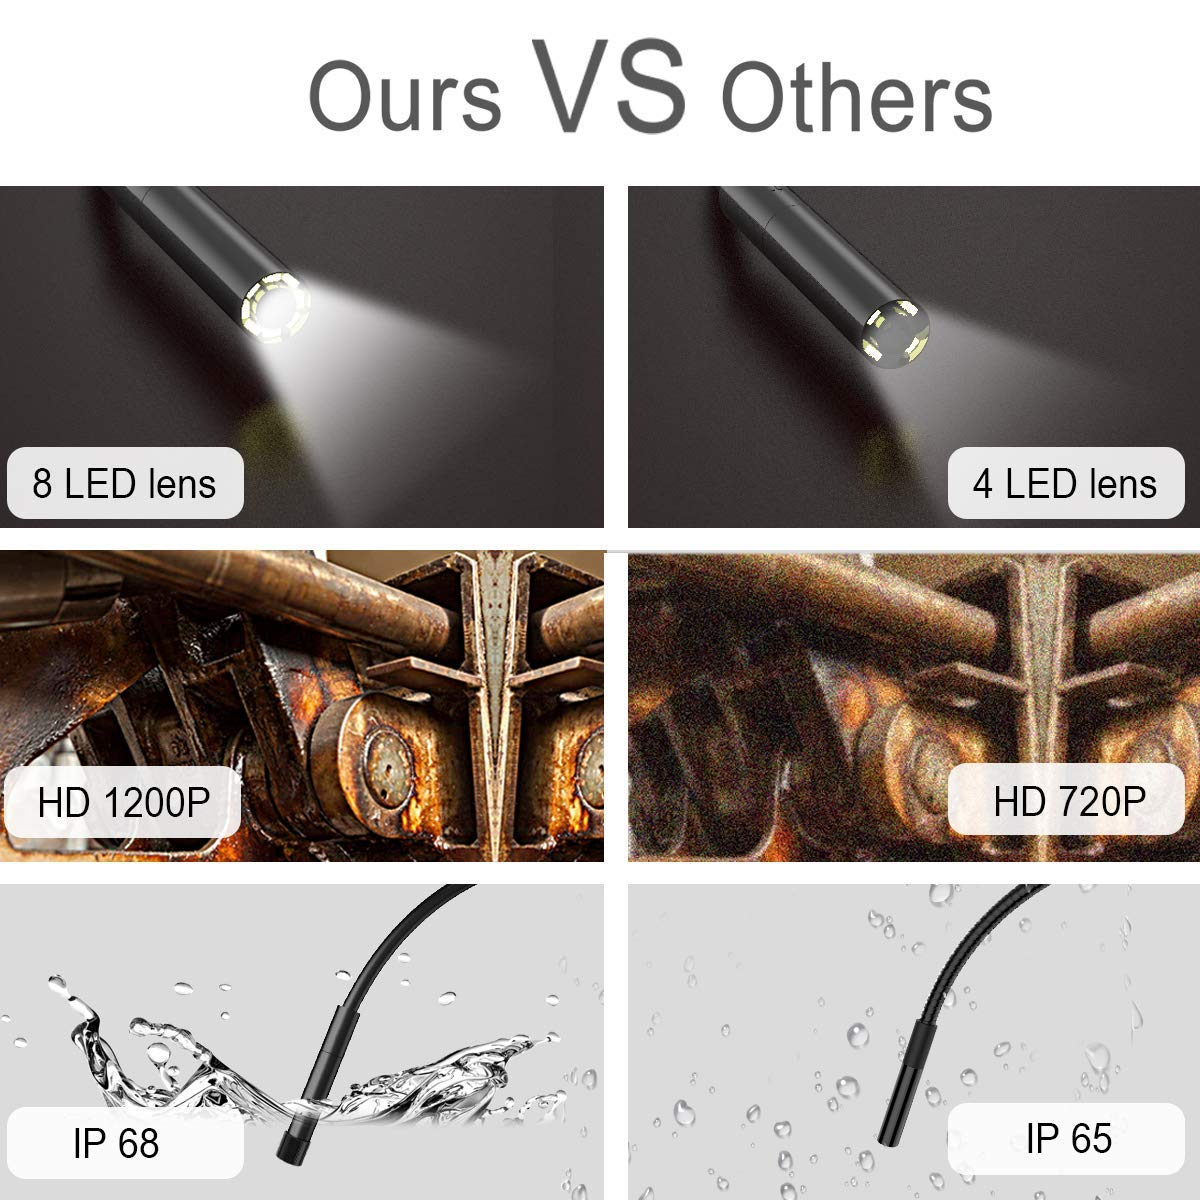 ERAY 33FT Wireless Endoscope 1200P WiFi Borescope Inspection Camera 2.0 Megapixels HD Snake Camera with IP68 Waterproof 8 LEDs Lens for Android /& iOS Smartphone Tablet Windows and Mac System Black